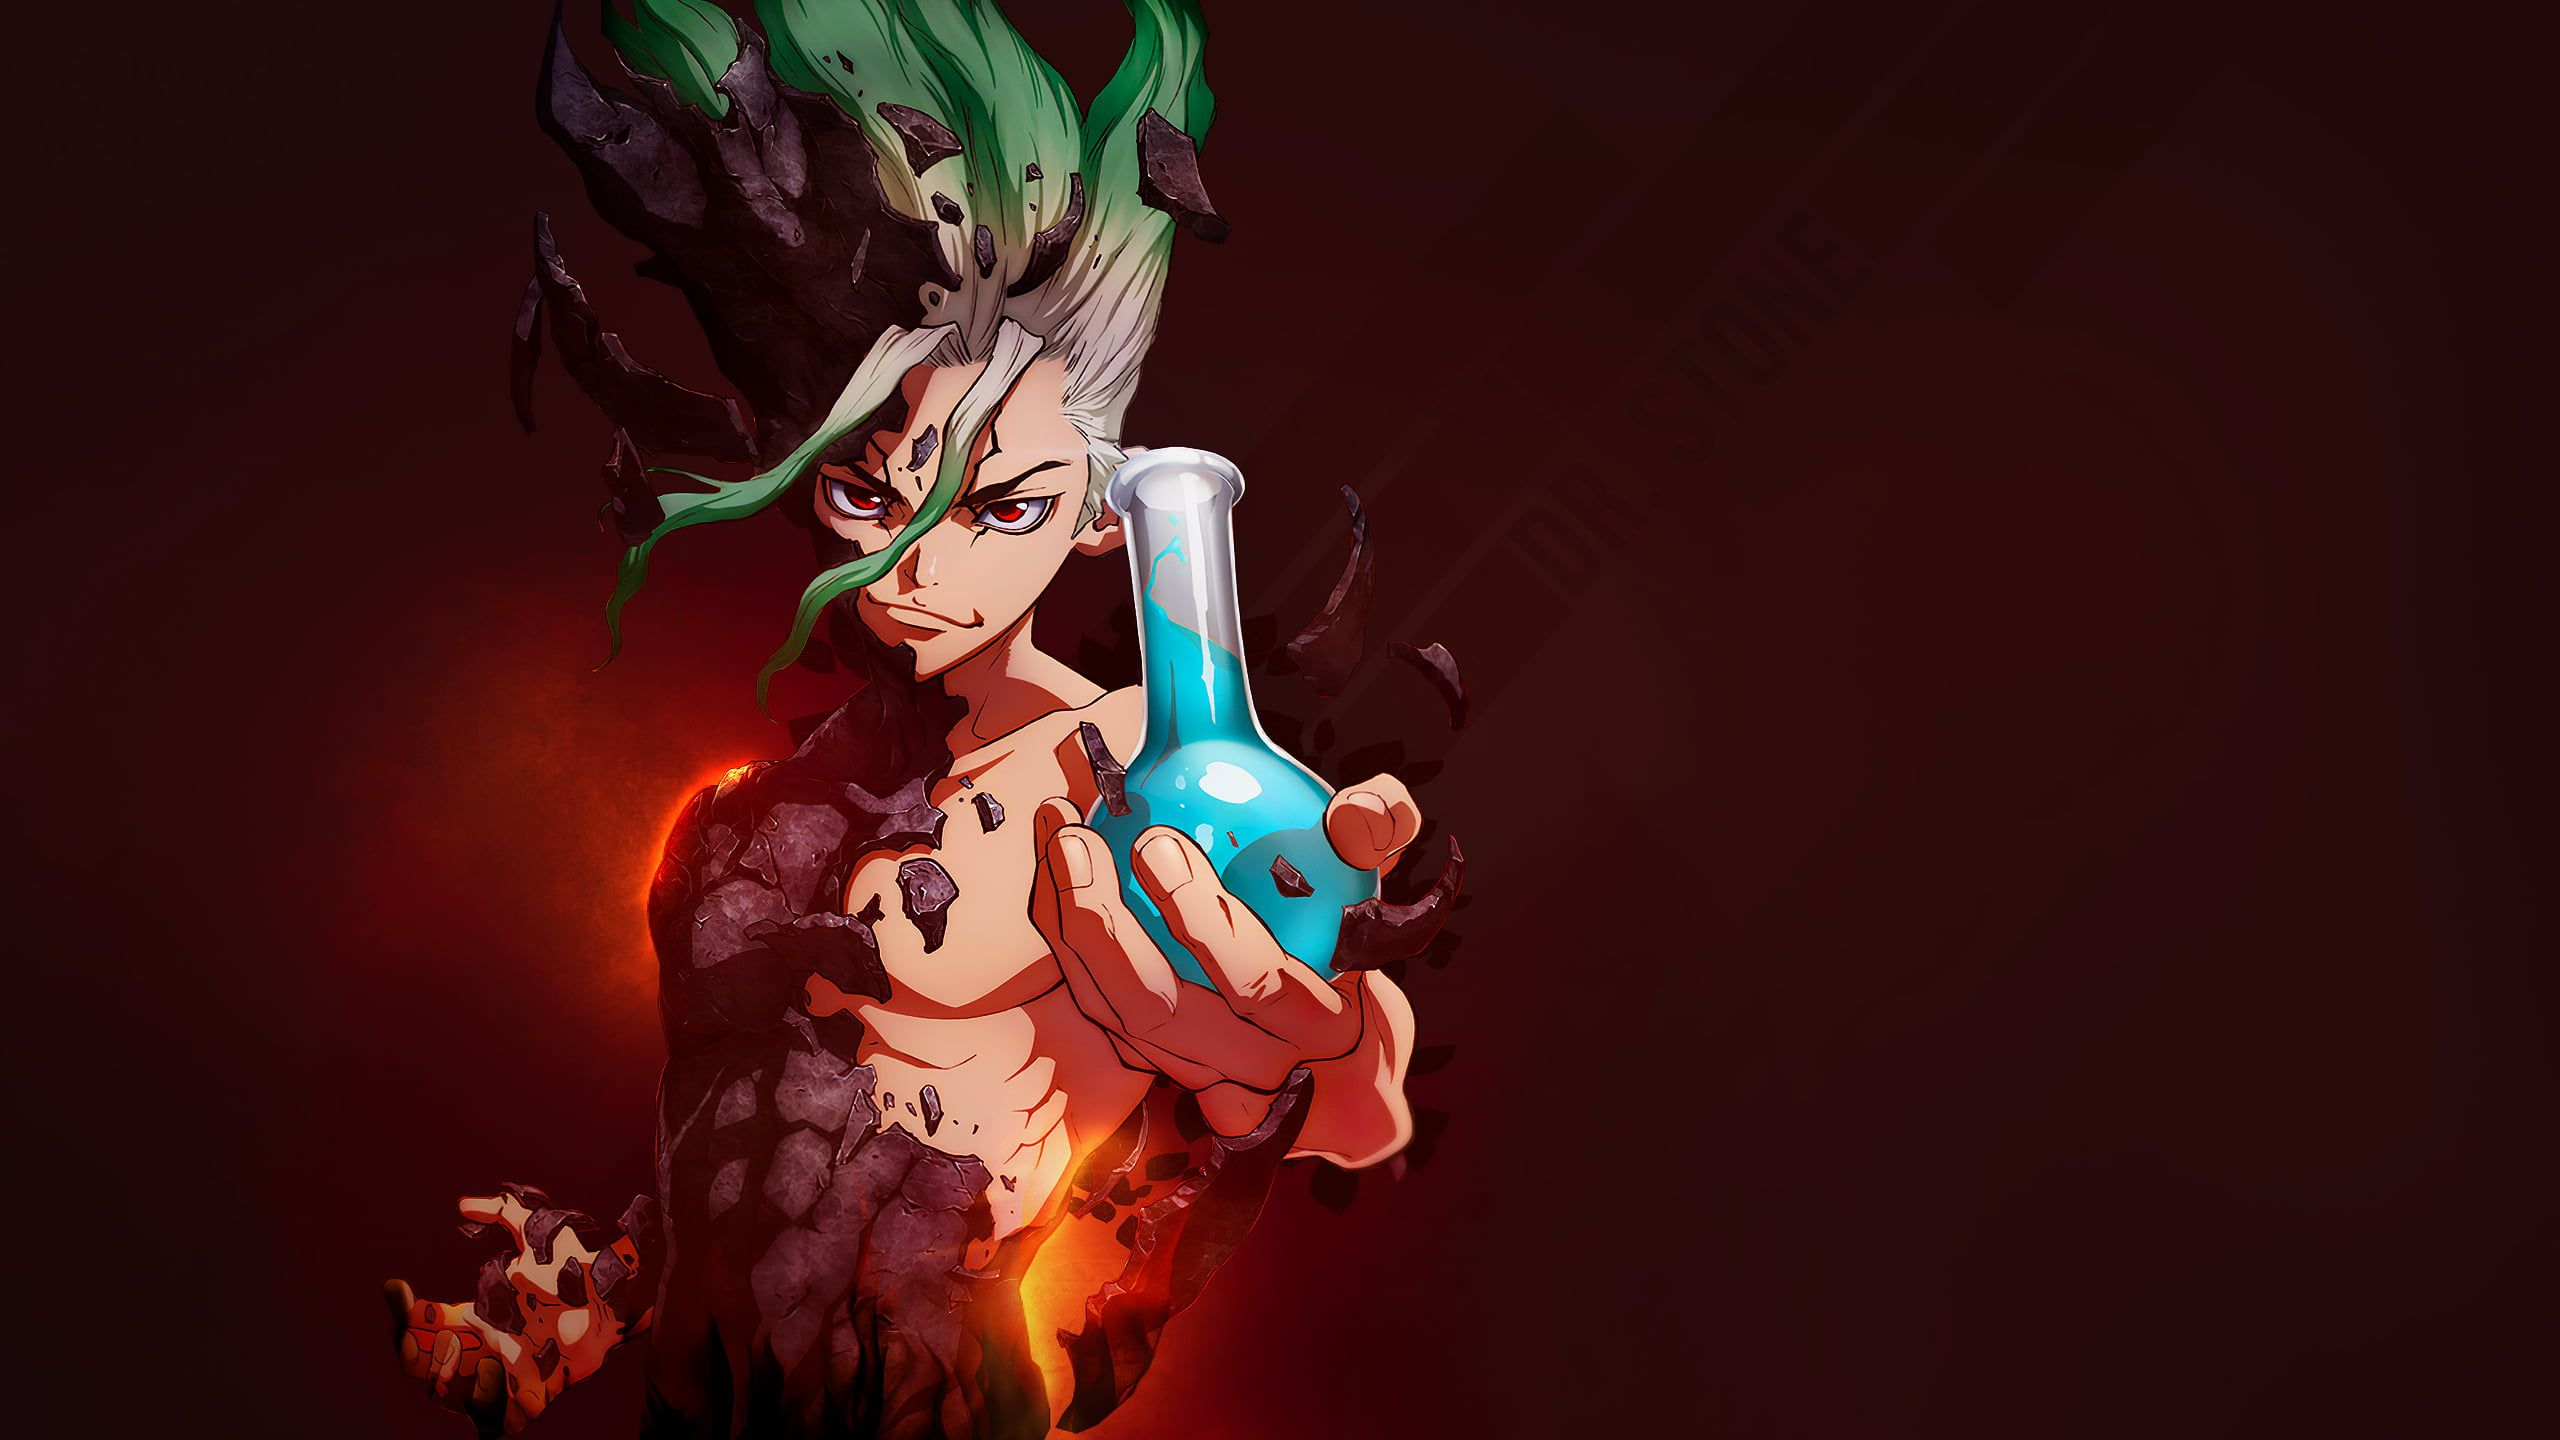 Dr. Stone anime flask 2K wallpaper hdwallpaper